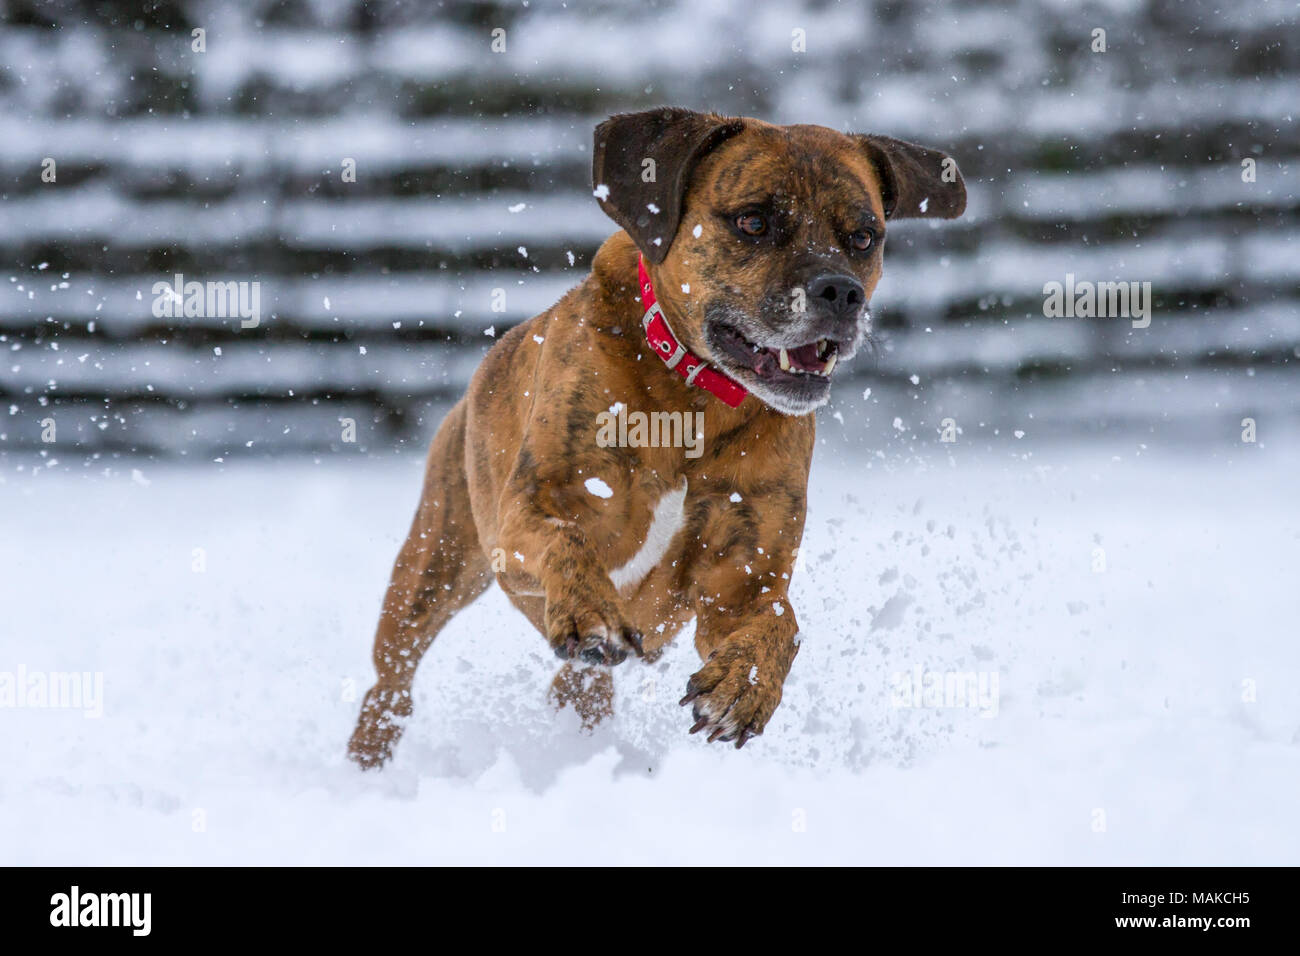 Happy Dog Running and Playing In Snow, United Kingdom - Stock Image